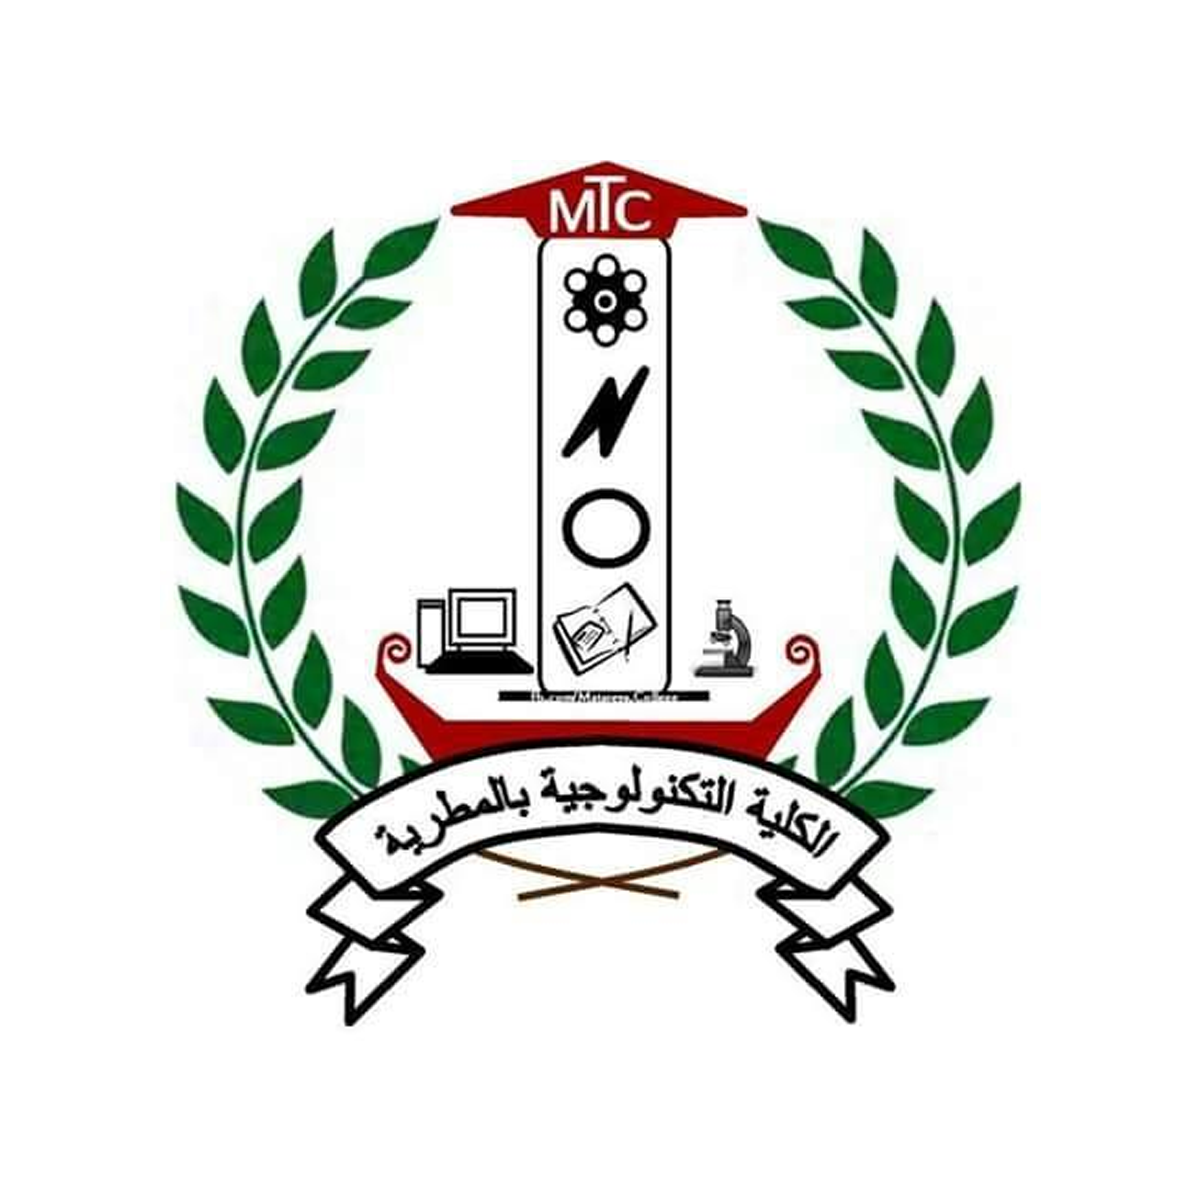 Technical Institute for Irrigation, Drainage and Surveying - Al-Mataria